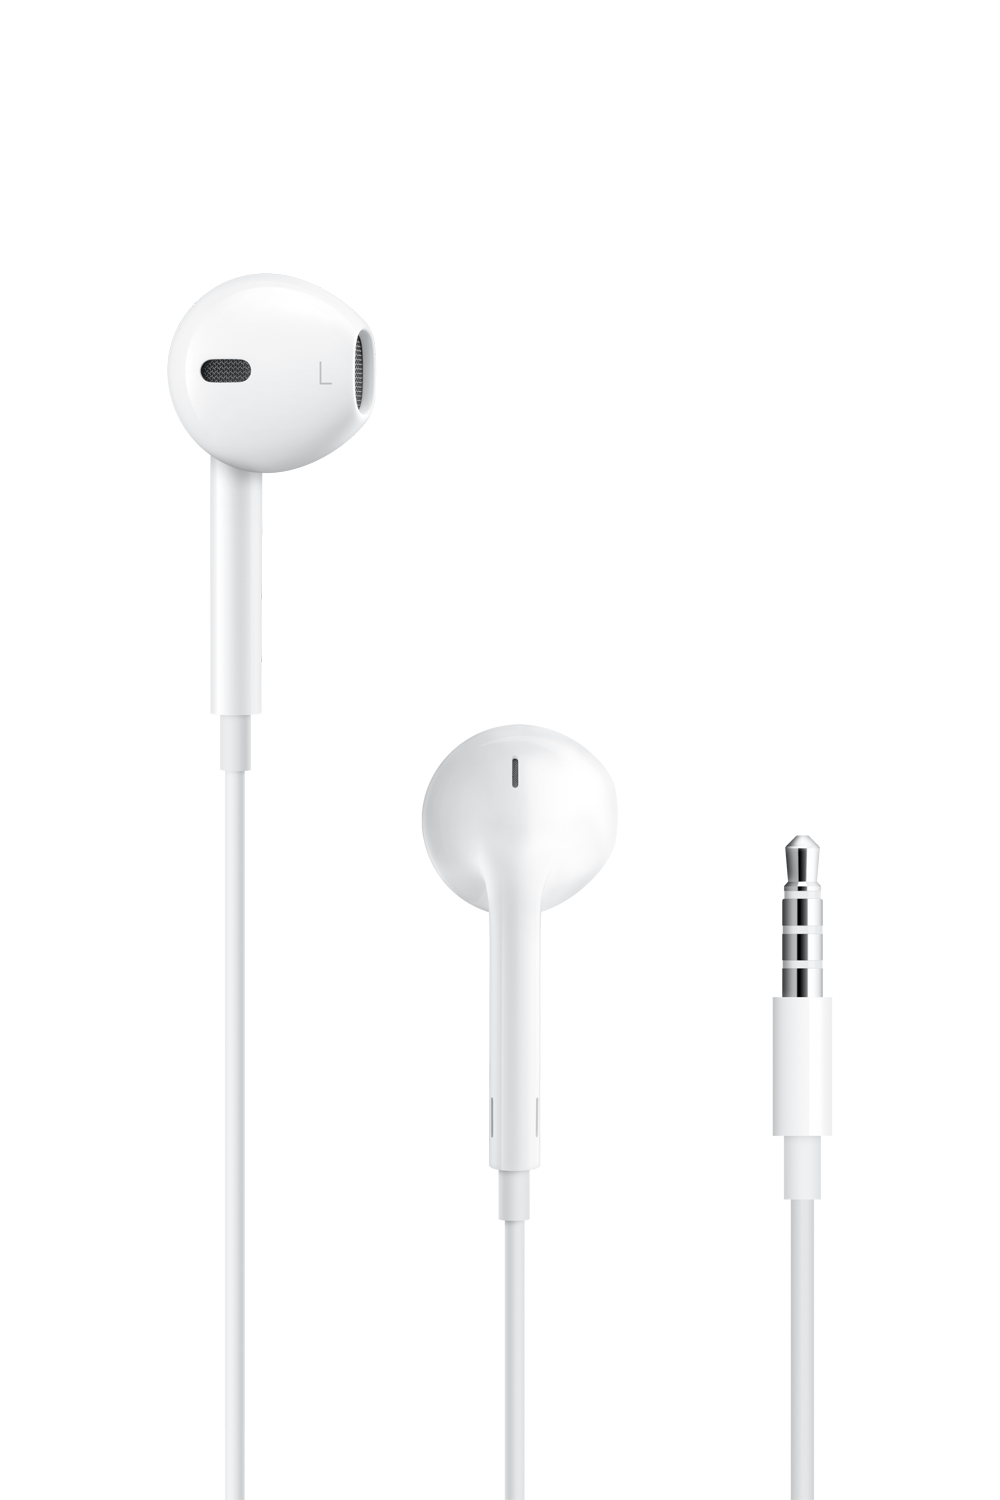 Apple EarPods with 3.5 mm Headphone Plug - QuickPantry